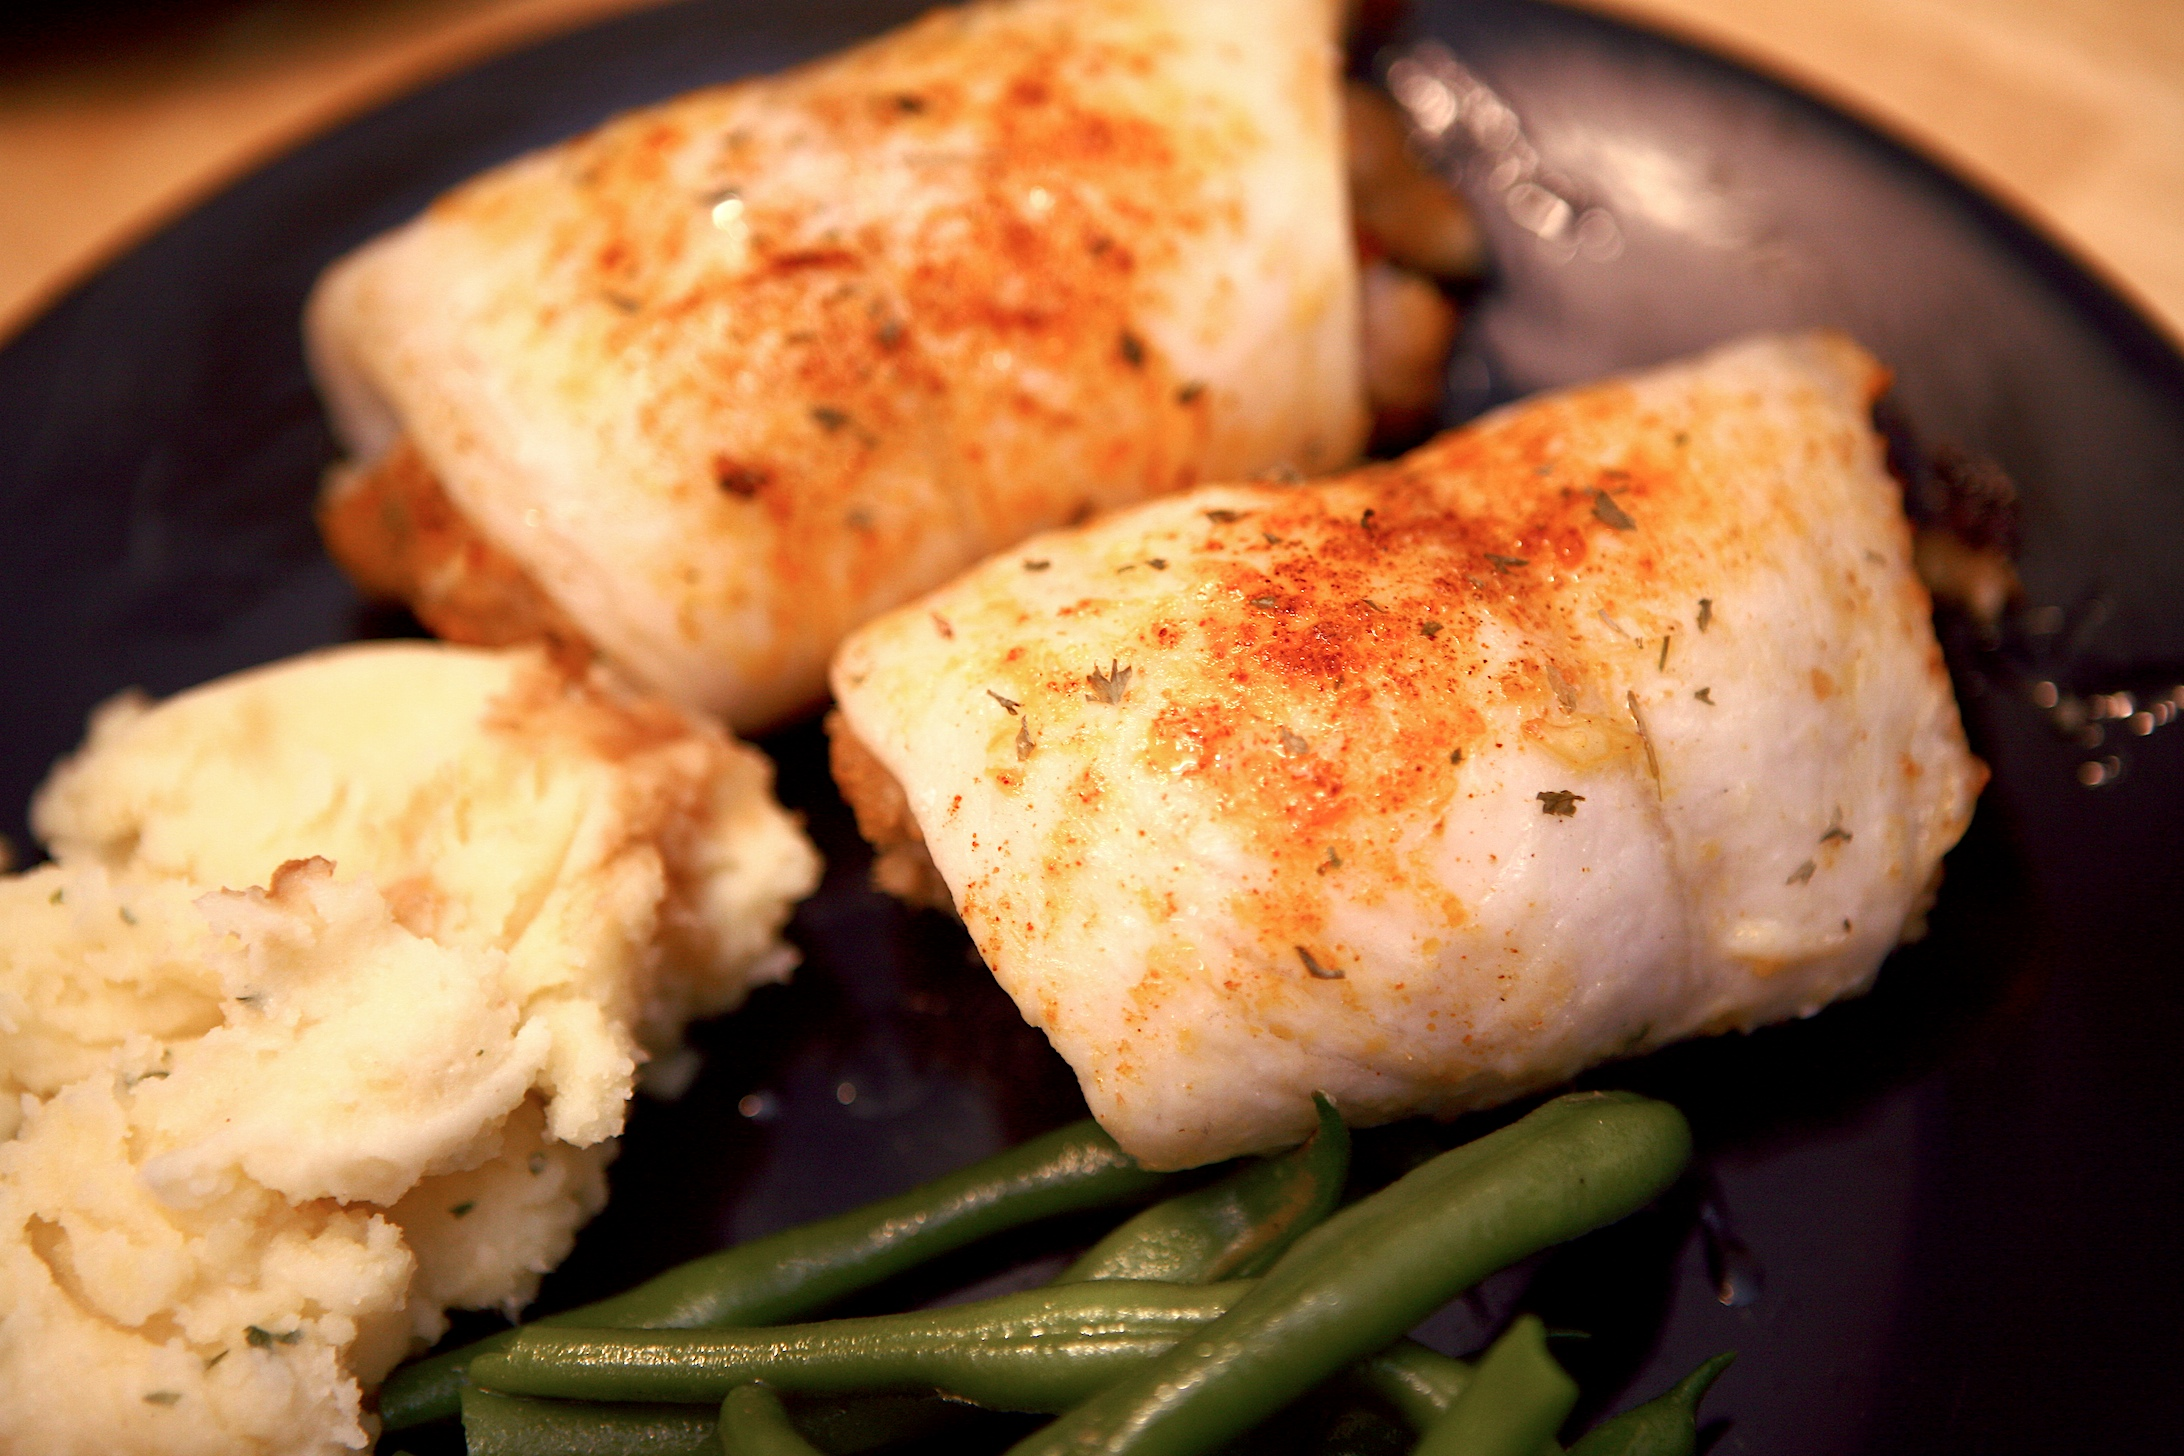 Crab stuffed fish tasty kitchen a happy recipe community for Stuffed fish with crab meat